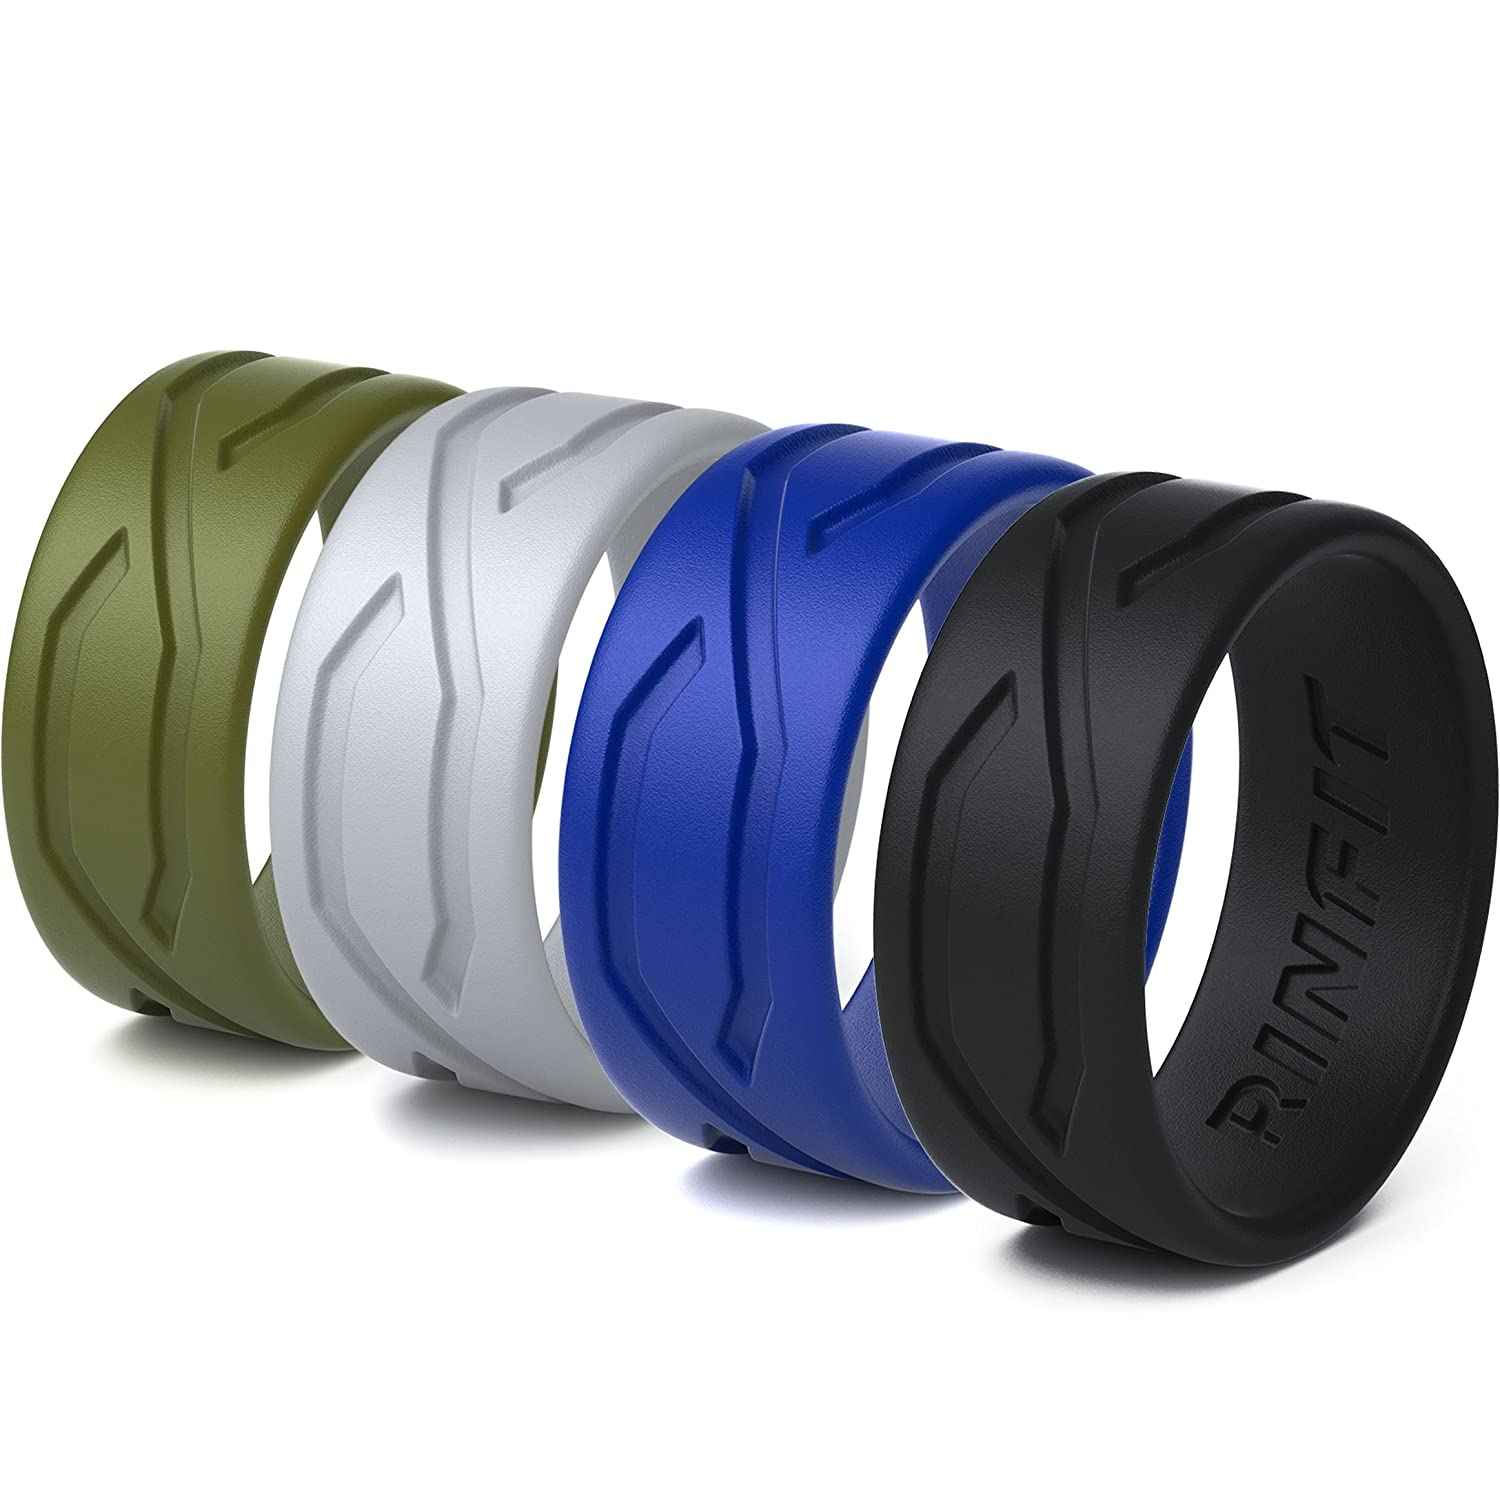 Amazon.com : Silicone Wedding Ring For Women - 5 Rings Pack ...